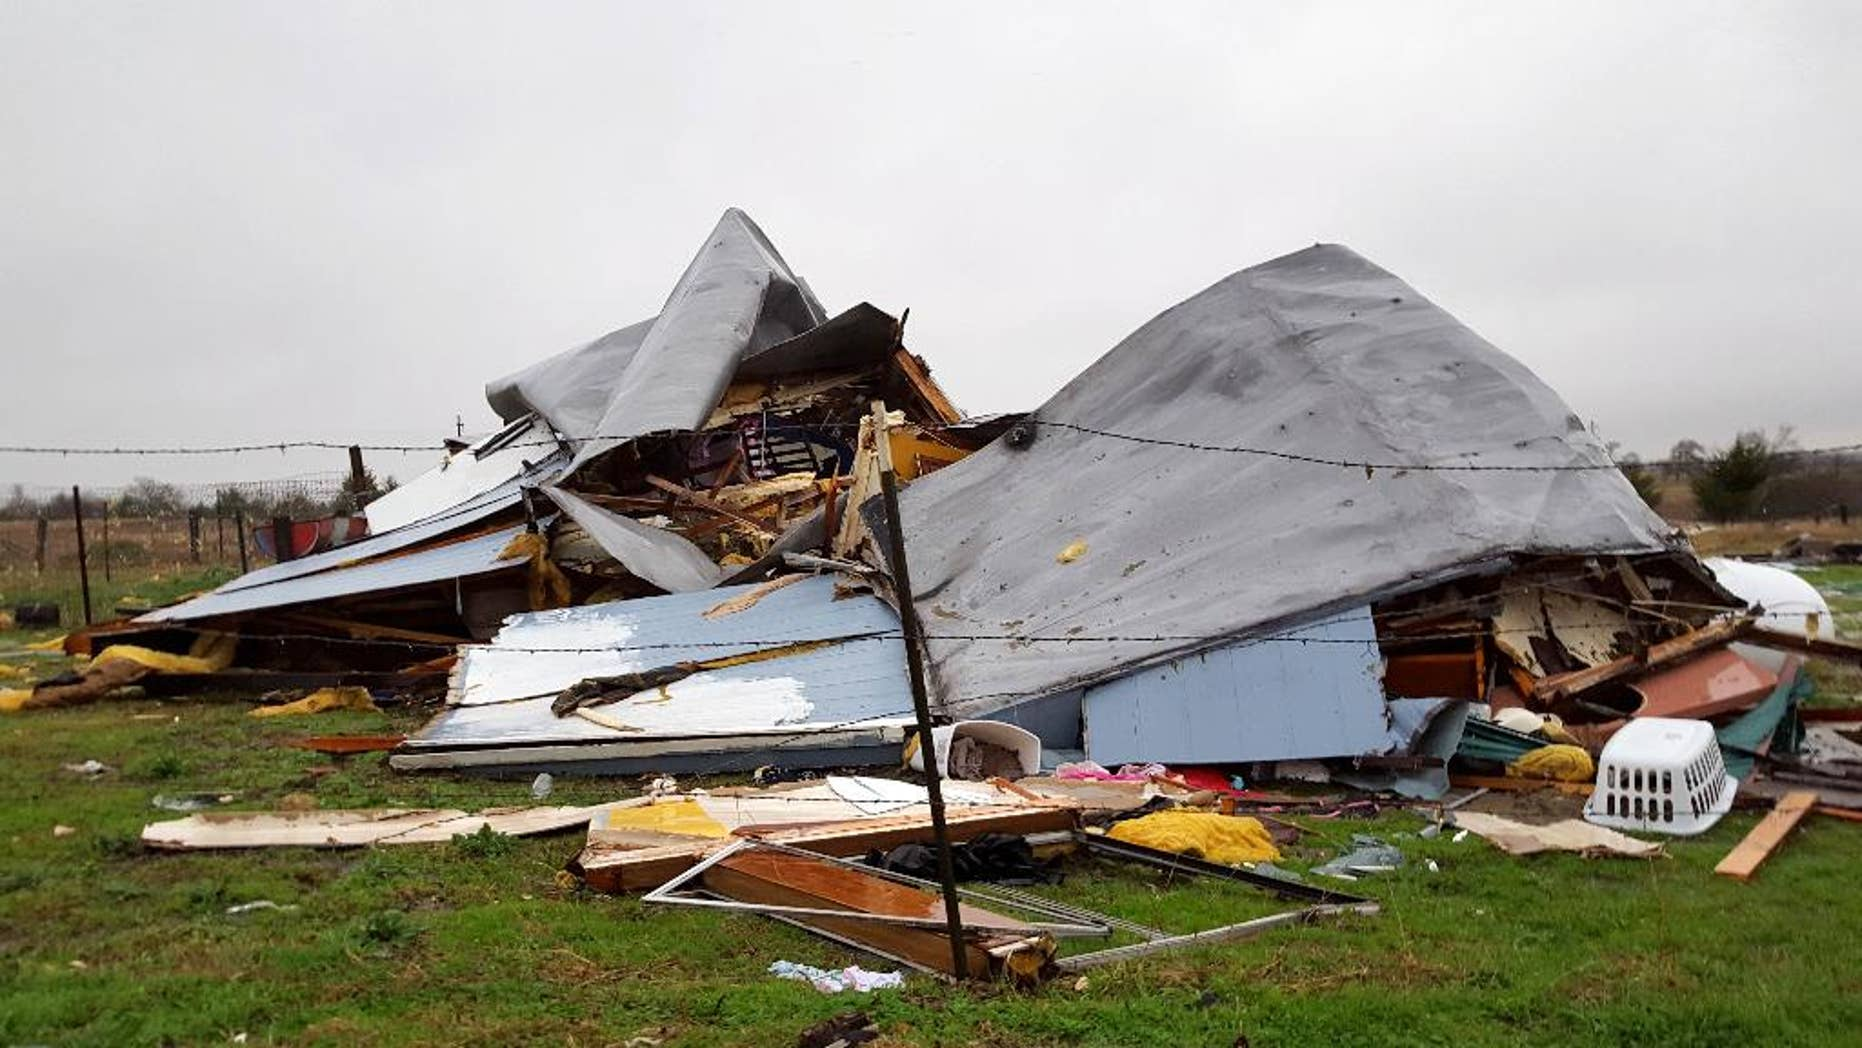 This Sunday, Dec. 27, 2015 photo shows damage to the home where Daniel and Zuleyma Santillano lived with their newborn and three older children in Blue Ridge, Texas, north of Dallas. The Santillano's newborn was killed when the home was destroyed by a tornado Saturday night.  (AP Photo/Reese Dunklin)